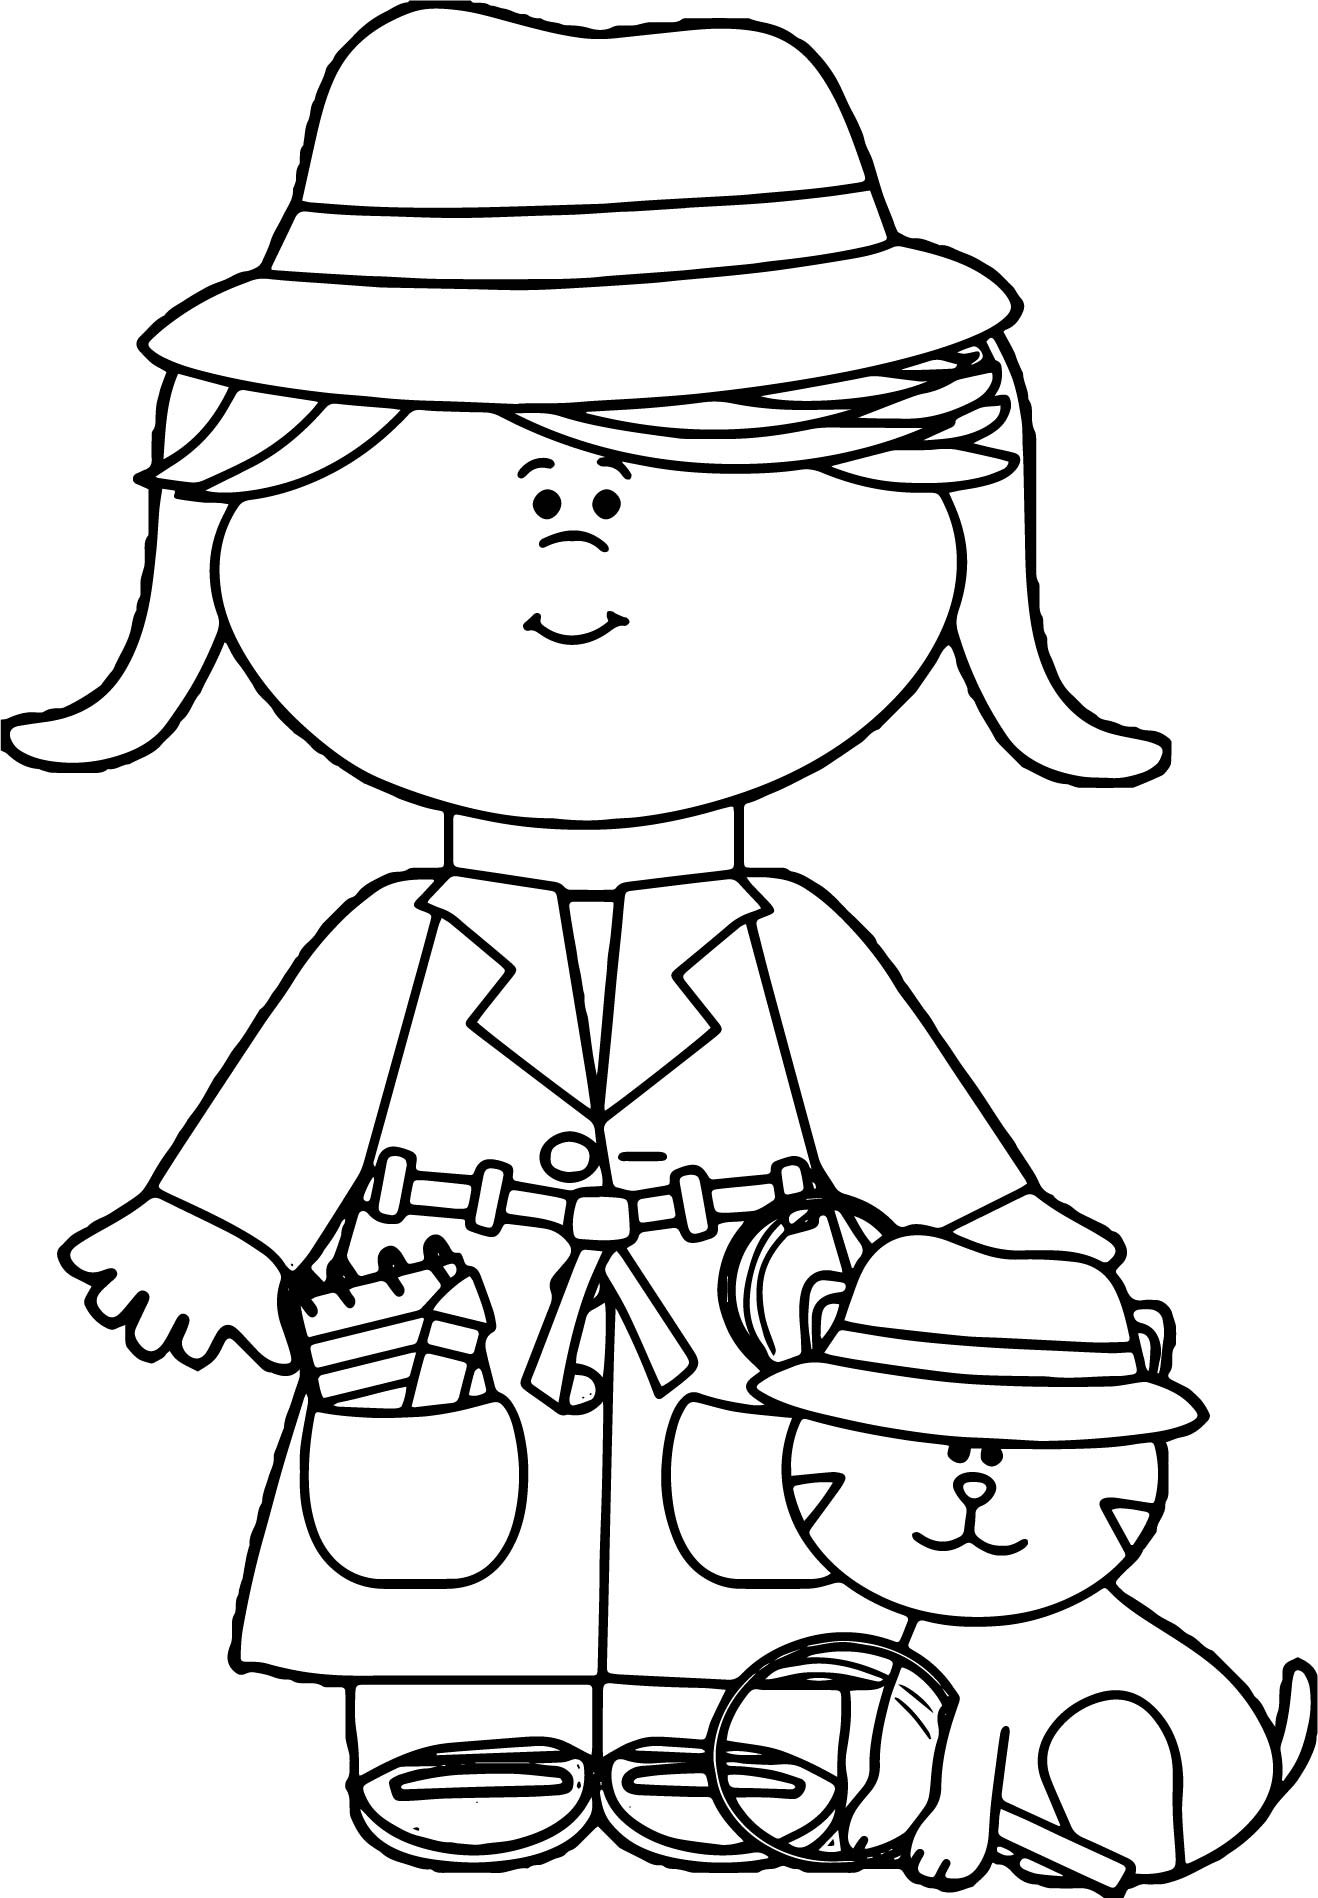 1318x1898 Fall Hat Coloring Page For Girls Unique Winter Clothing Coloring